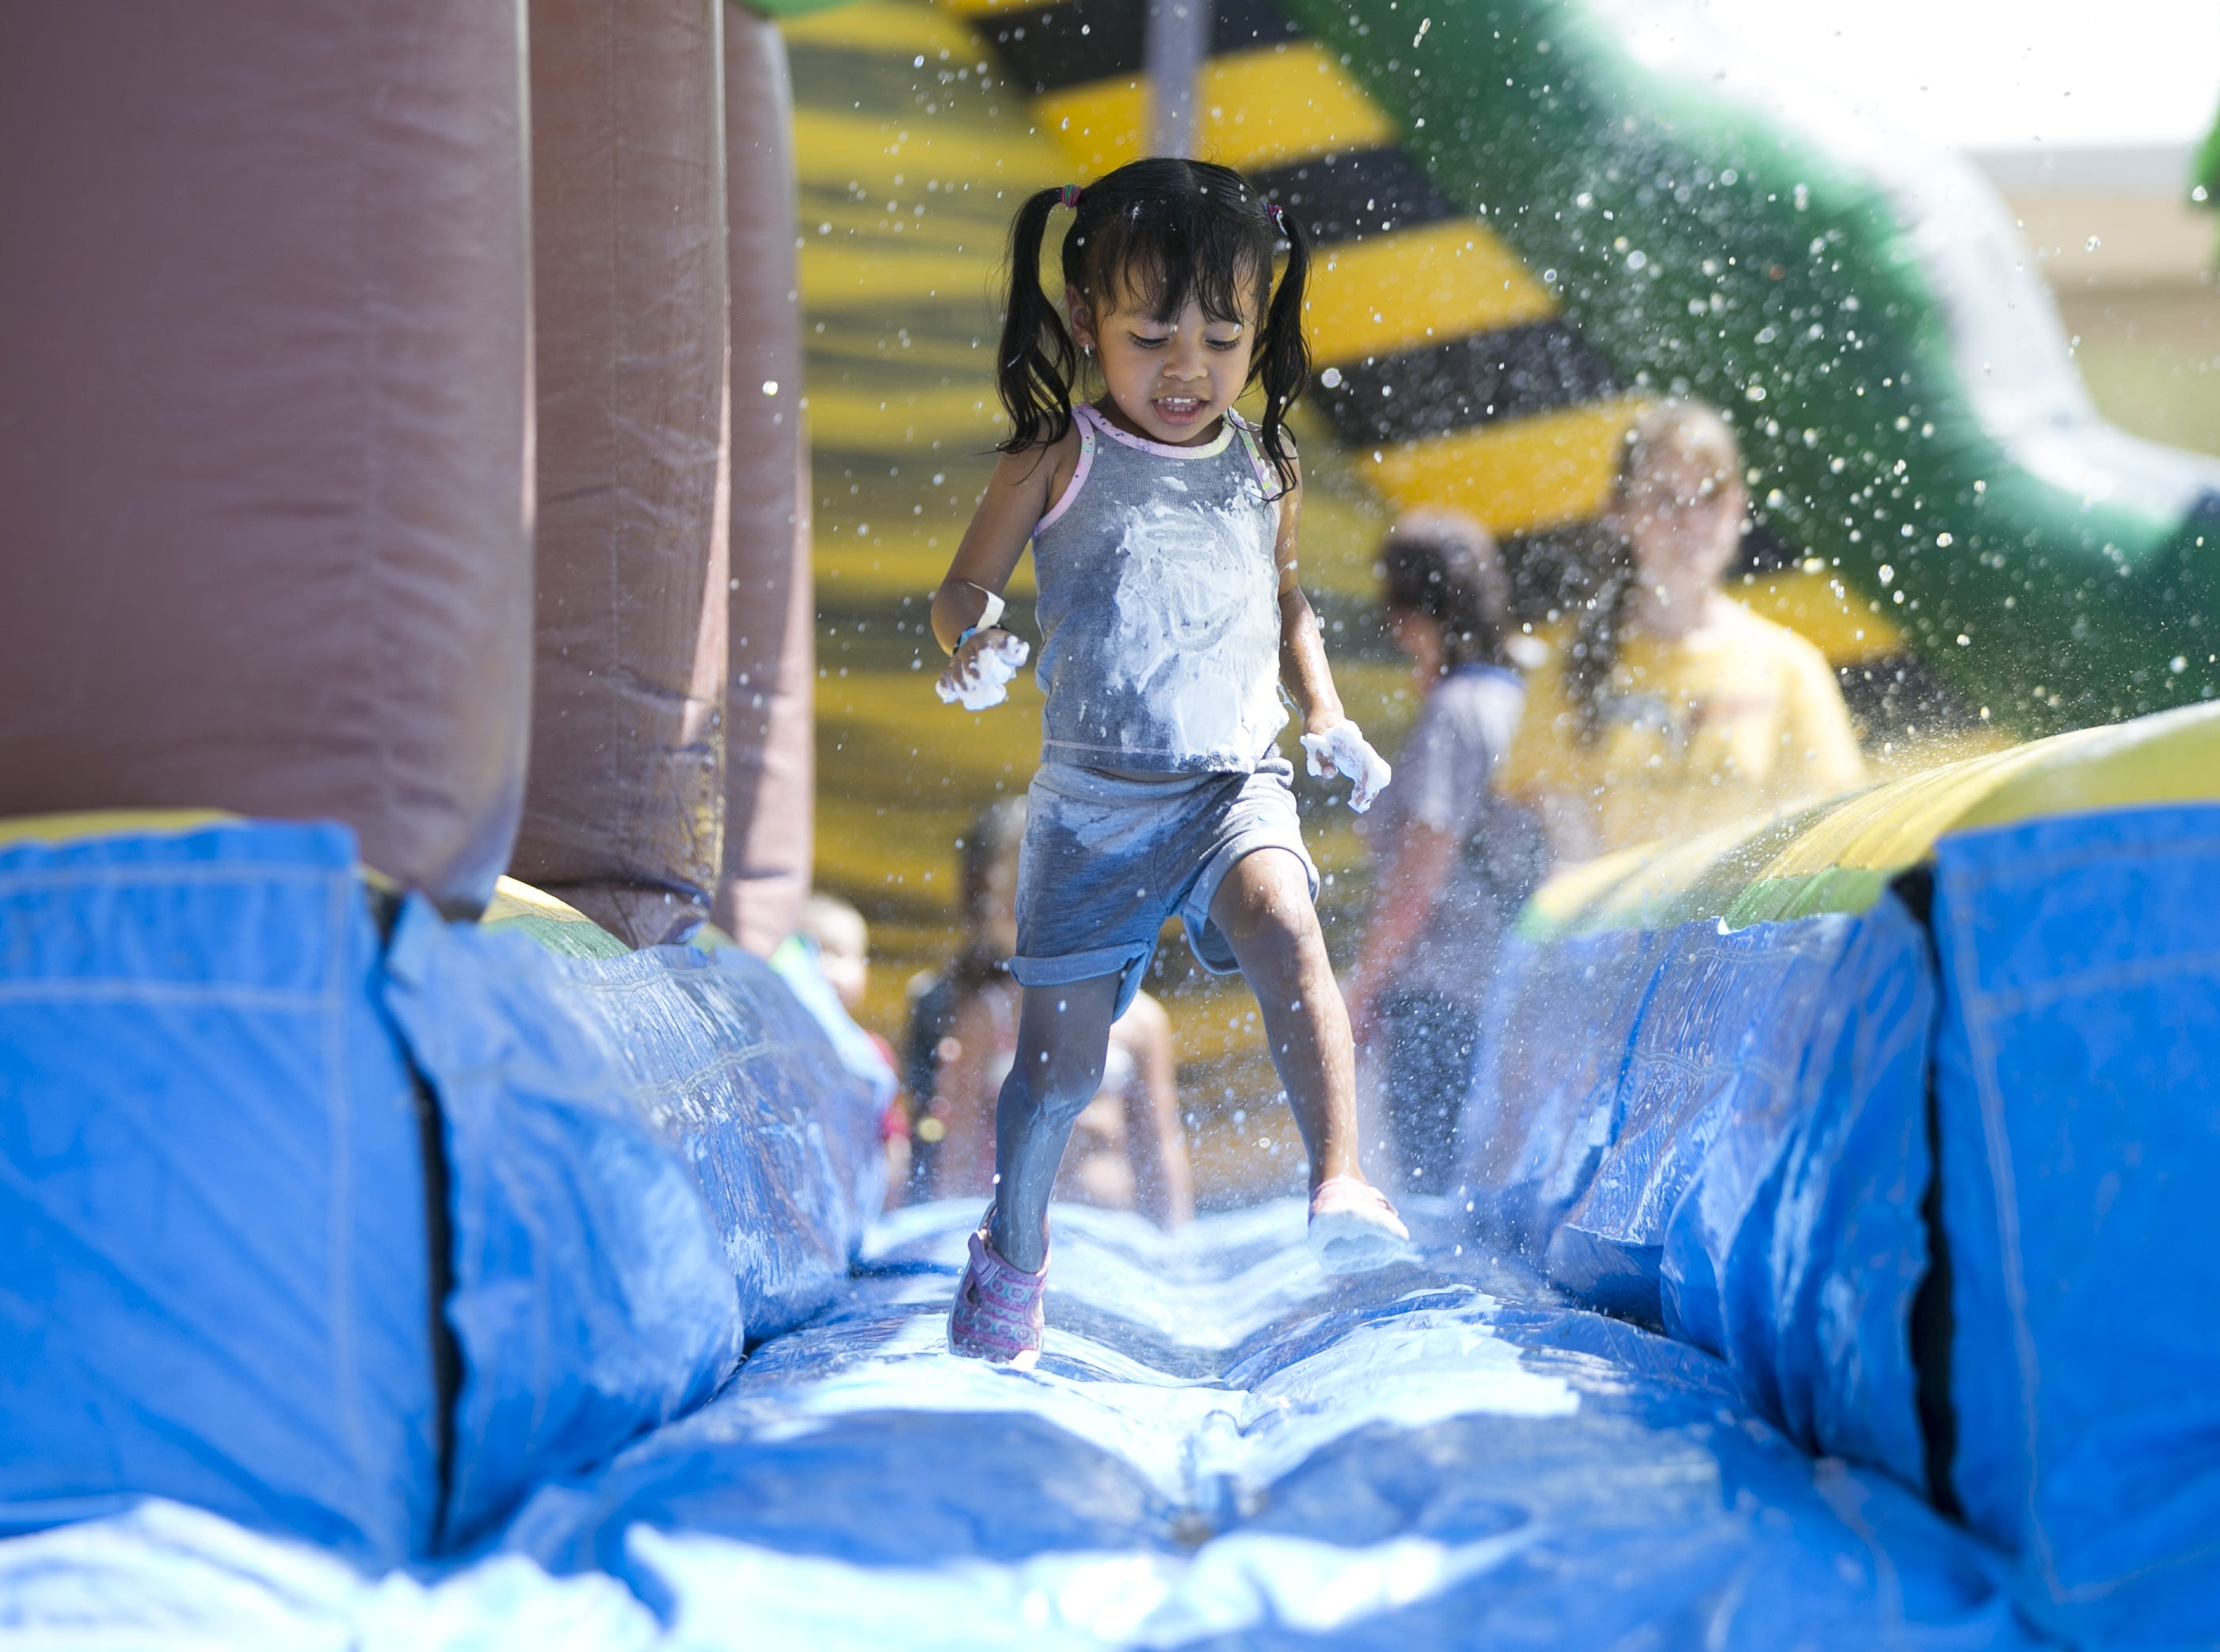 3-year-old Camilla Silva runs through a wet bounce house at the third annual Messy Fest in Queen Creek on Saturday, Sept. 15, 2018.